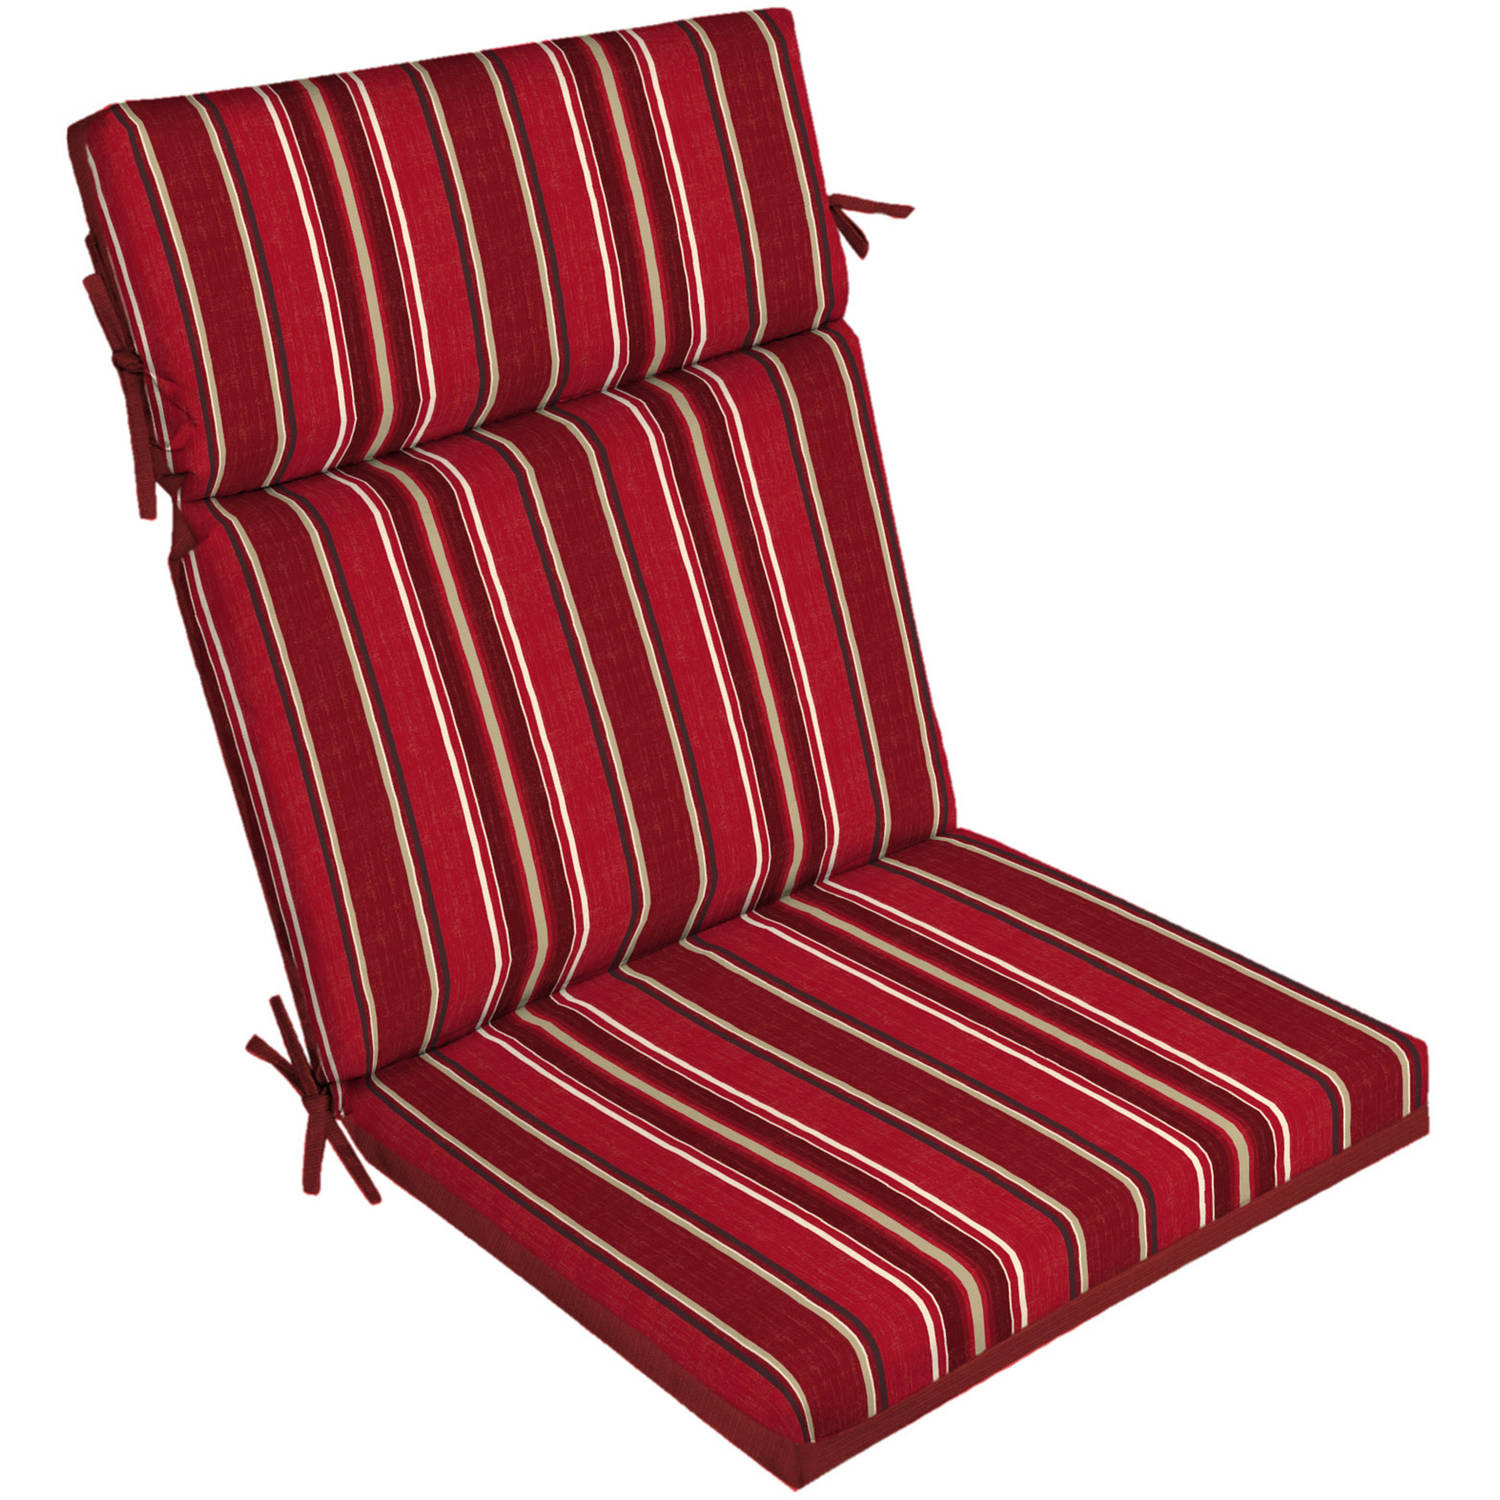 Best ideas about Outdoor Seat Cushions . Save or Pin Better Homes and Gardens Outdoor Patio Deep Seat Cushion Now.